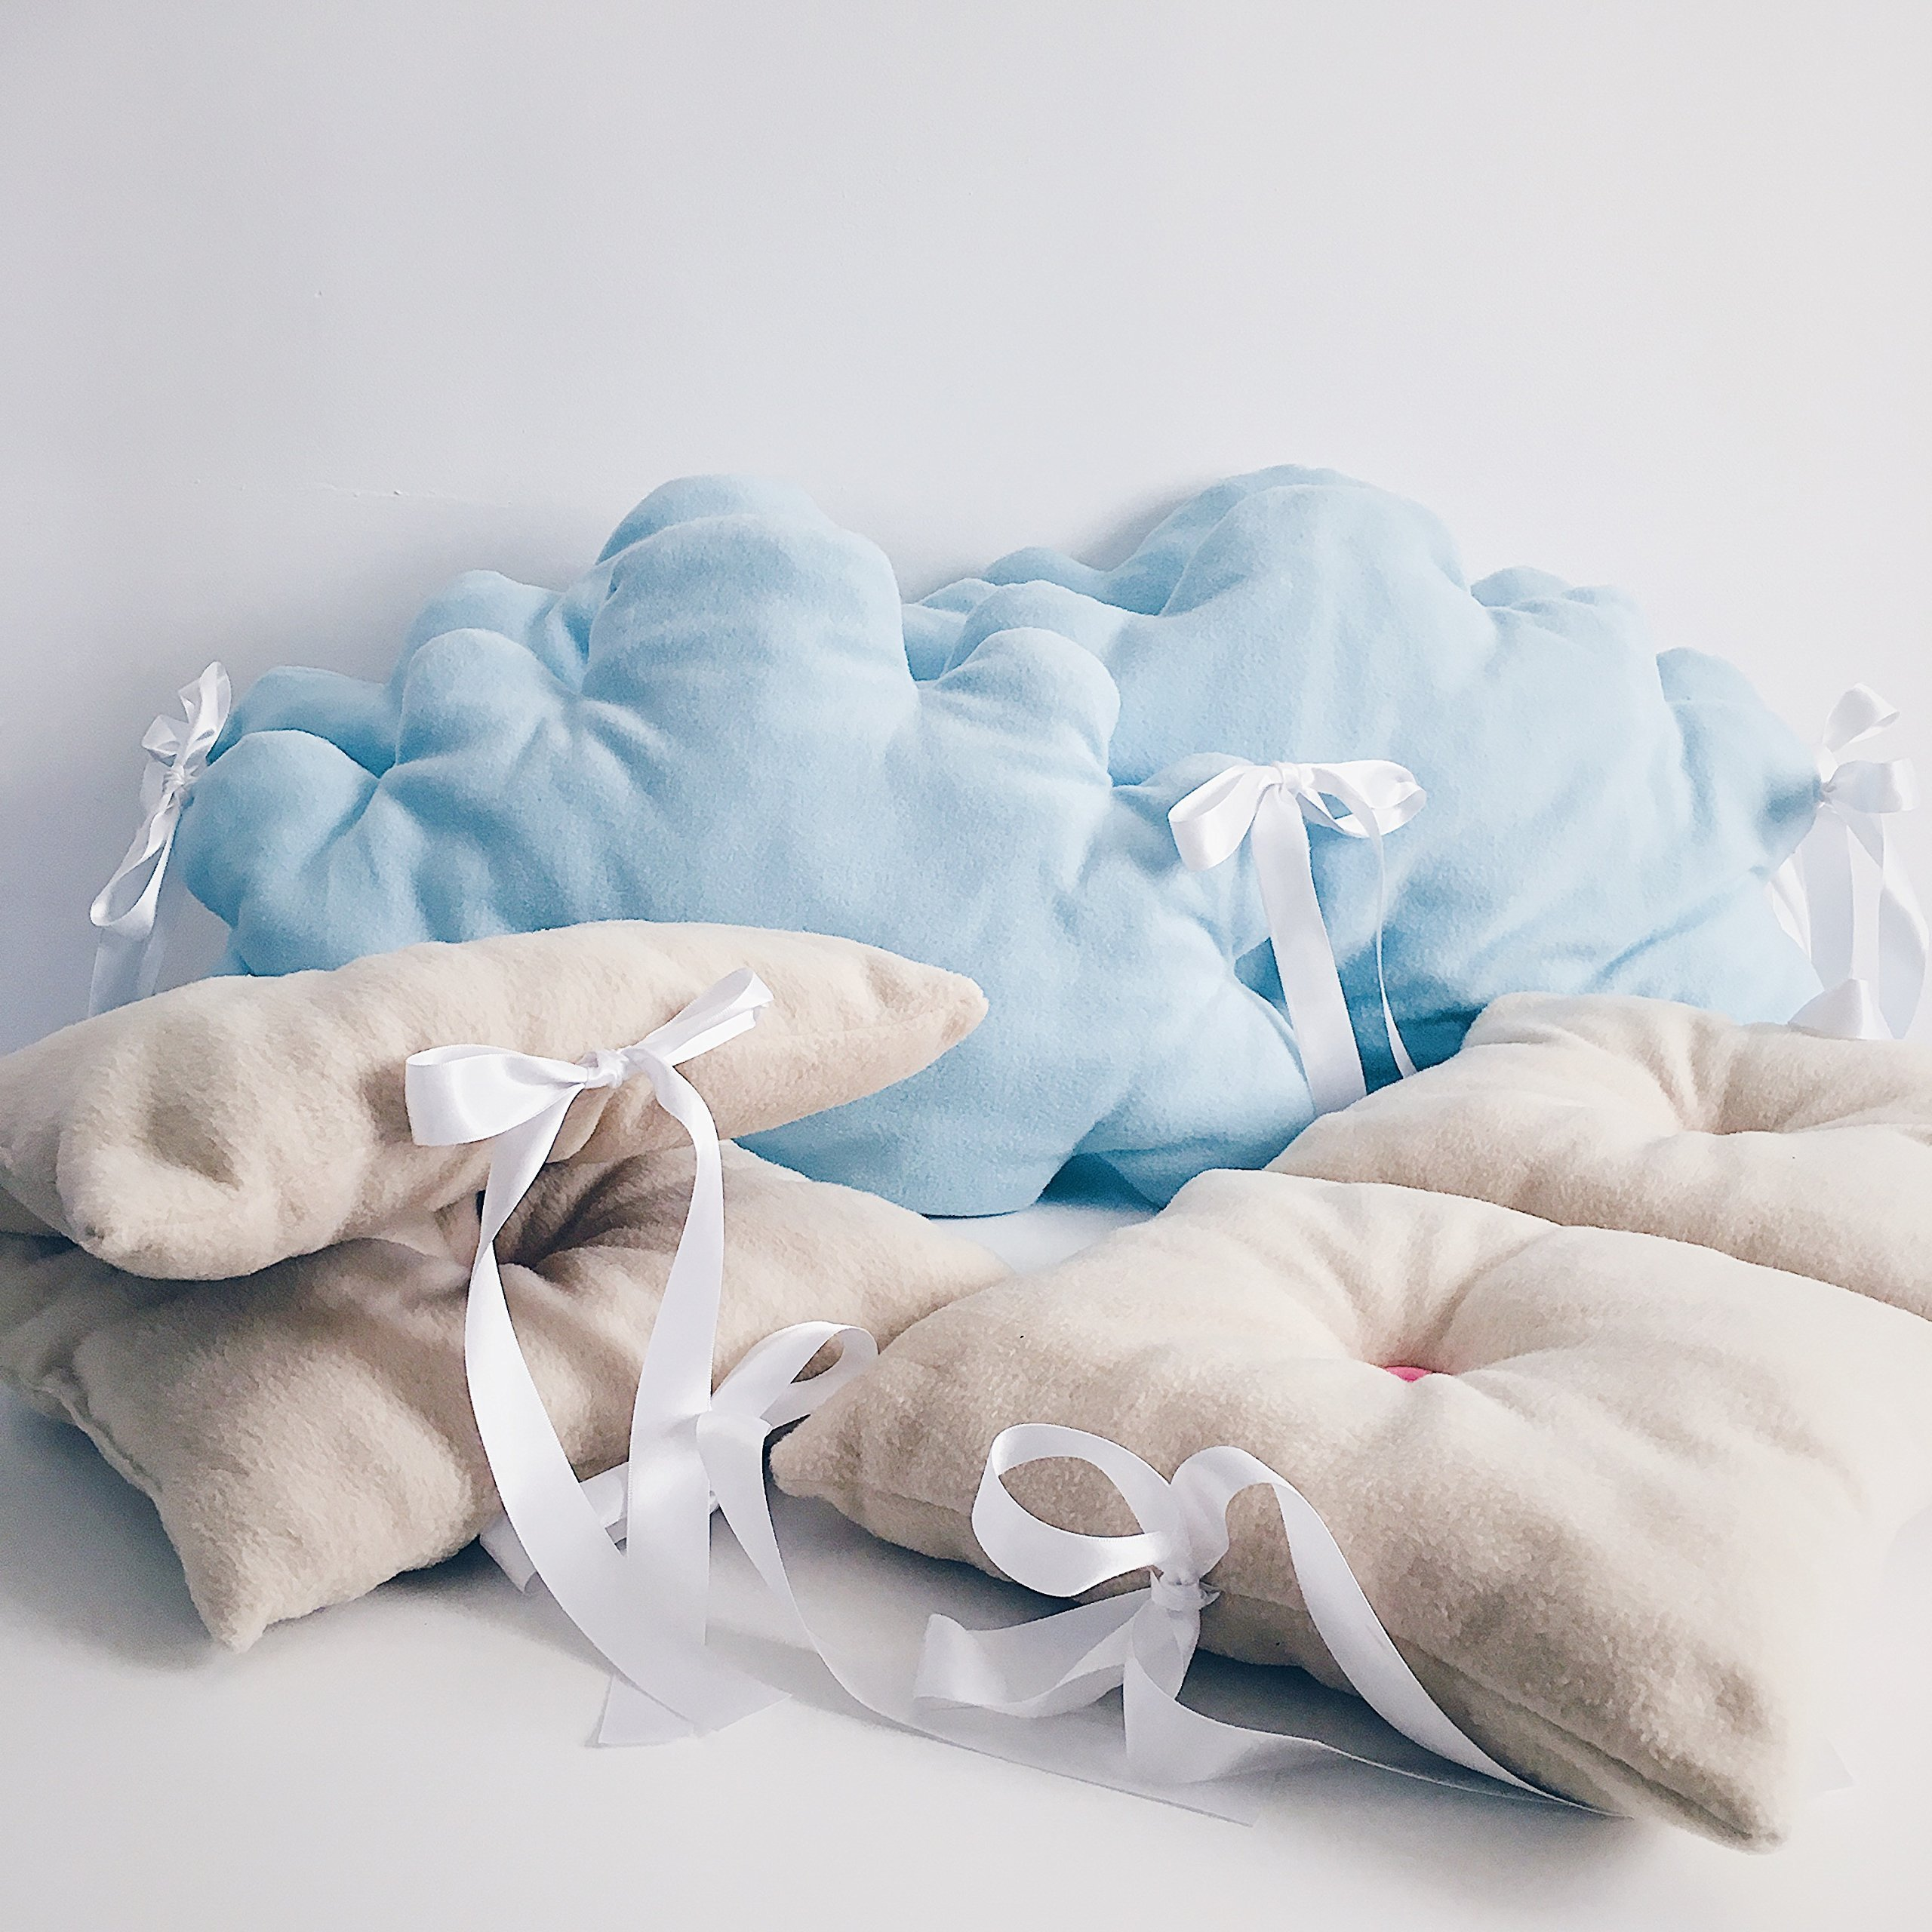 Baby crib lovely bedding set for girls and boys in light blue and beige